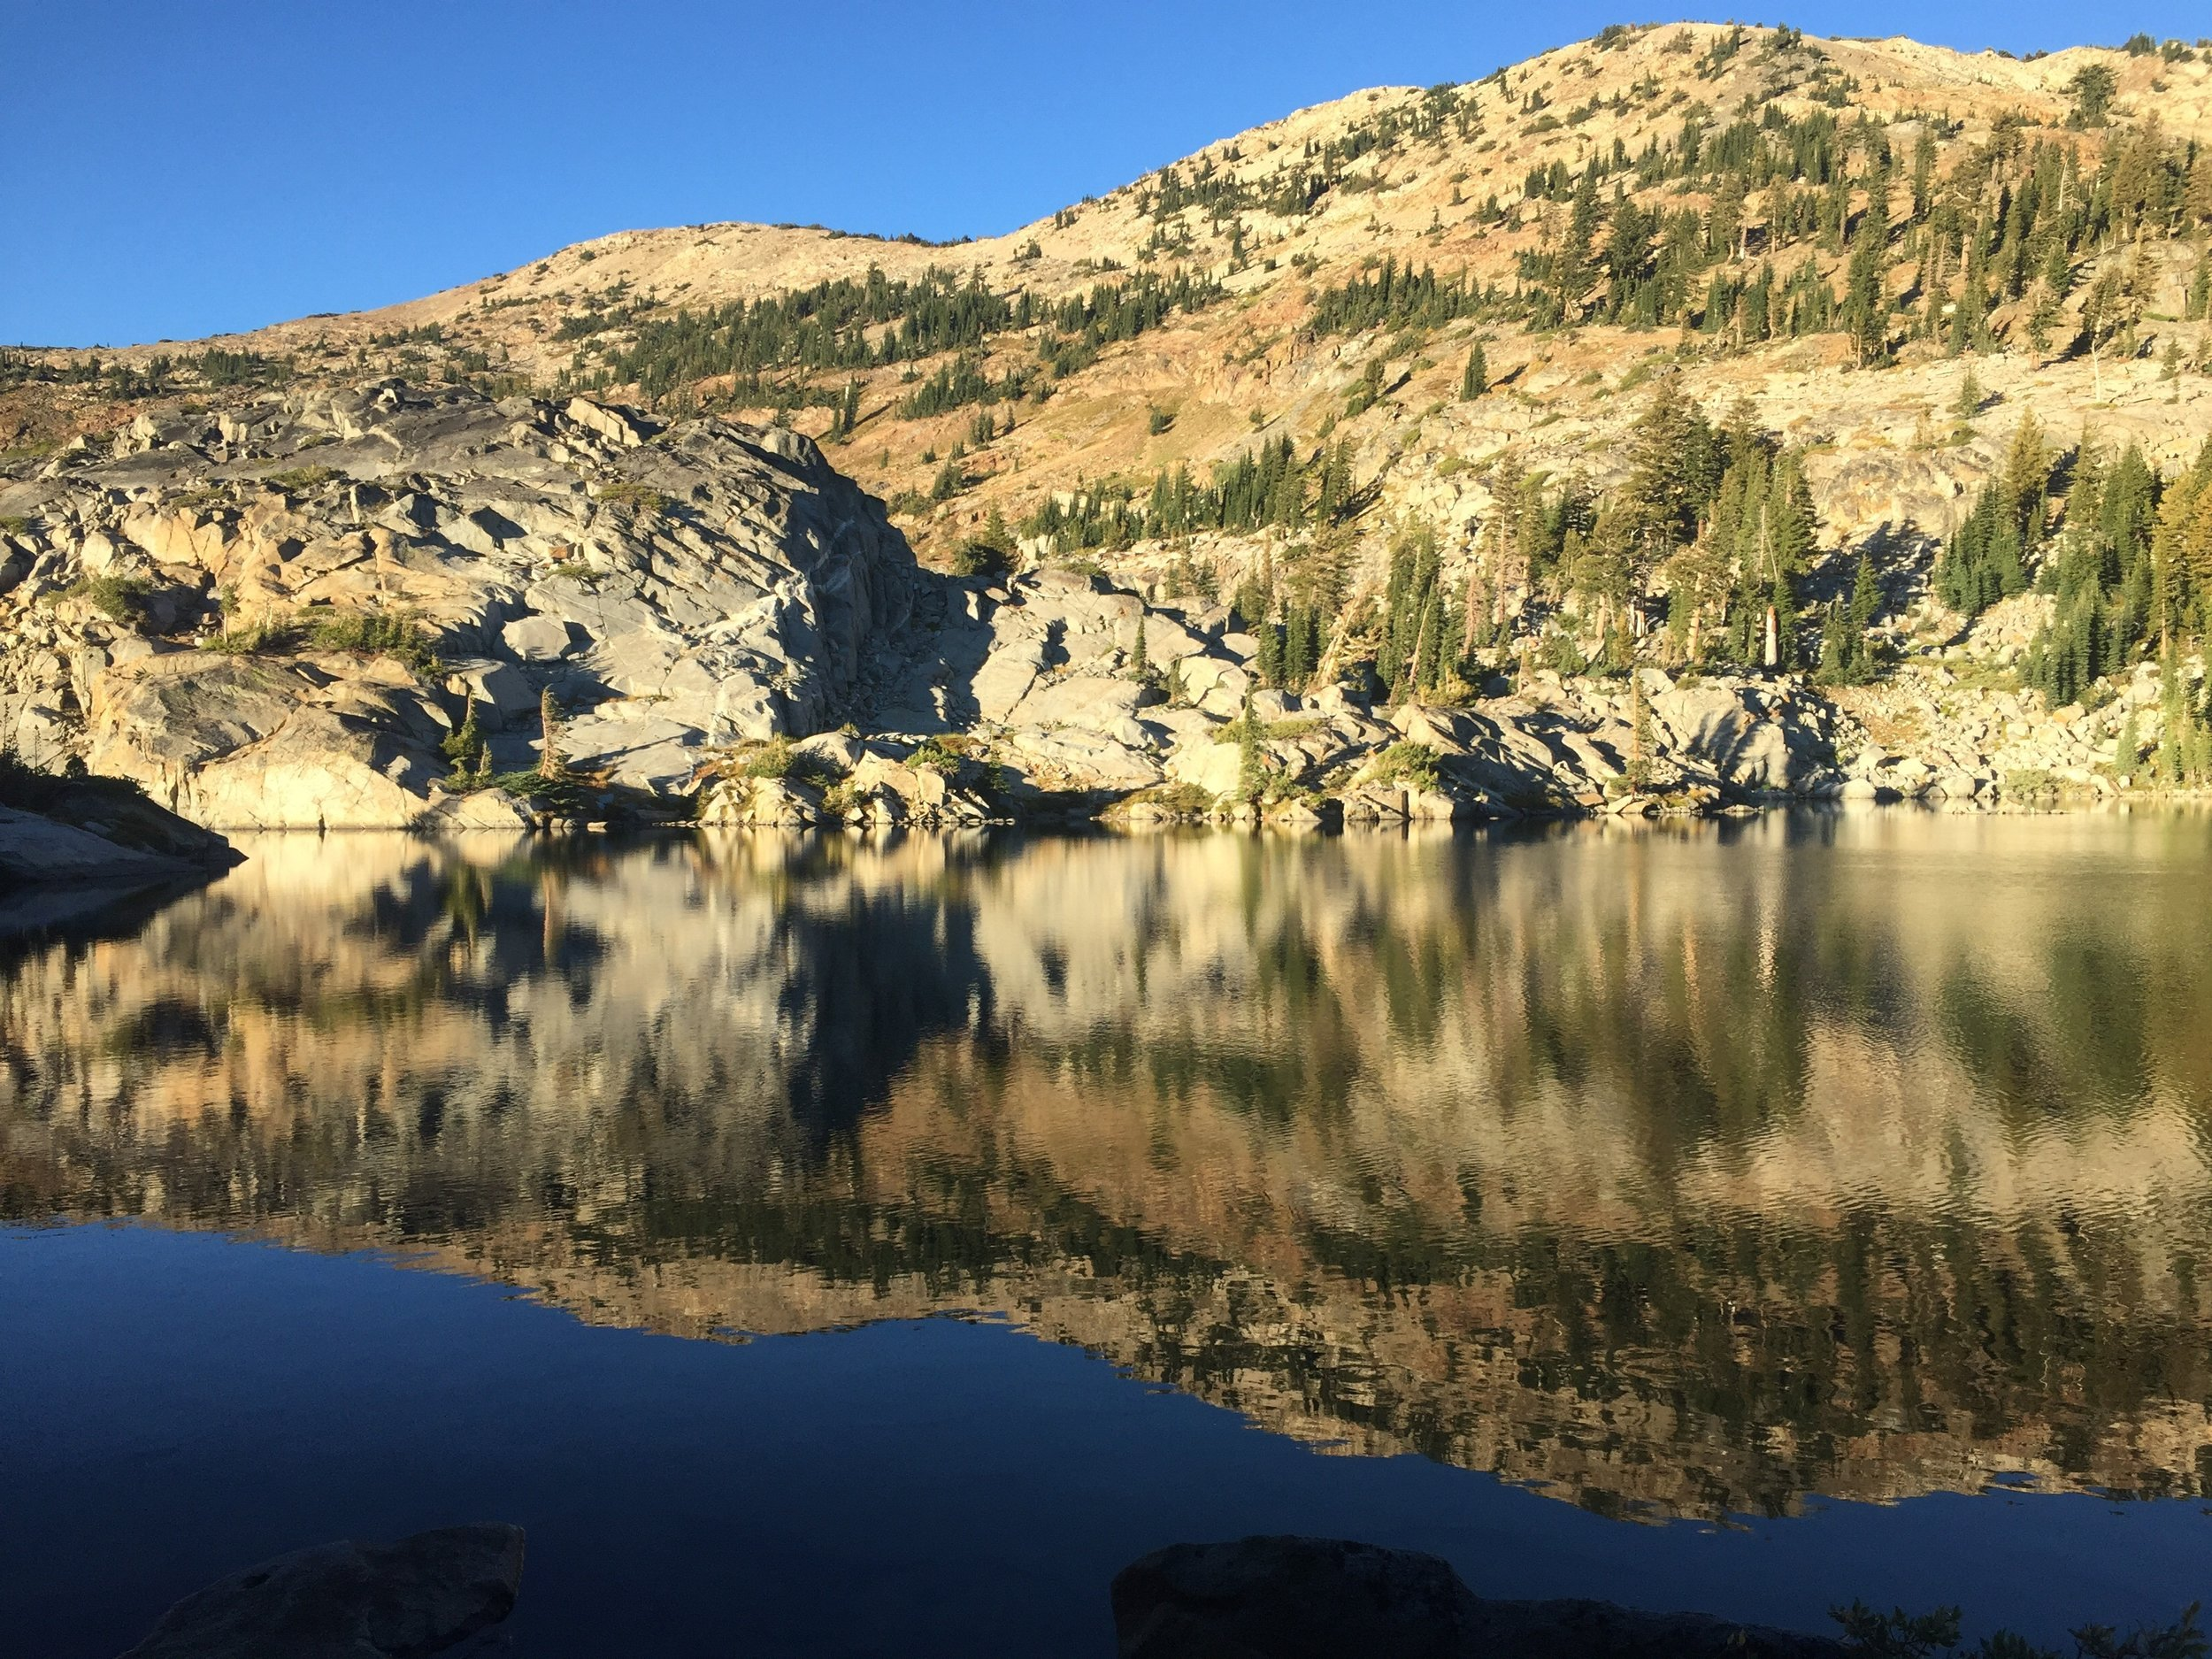 Morning light and reflection in Fontanillis Lake